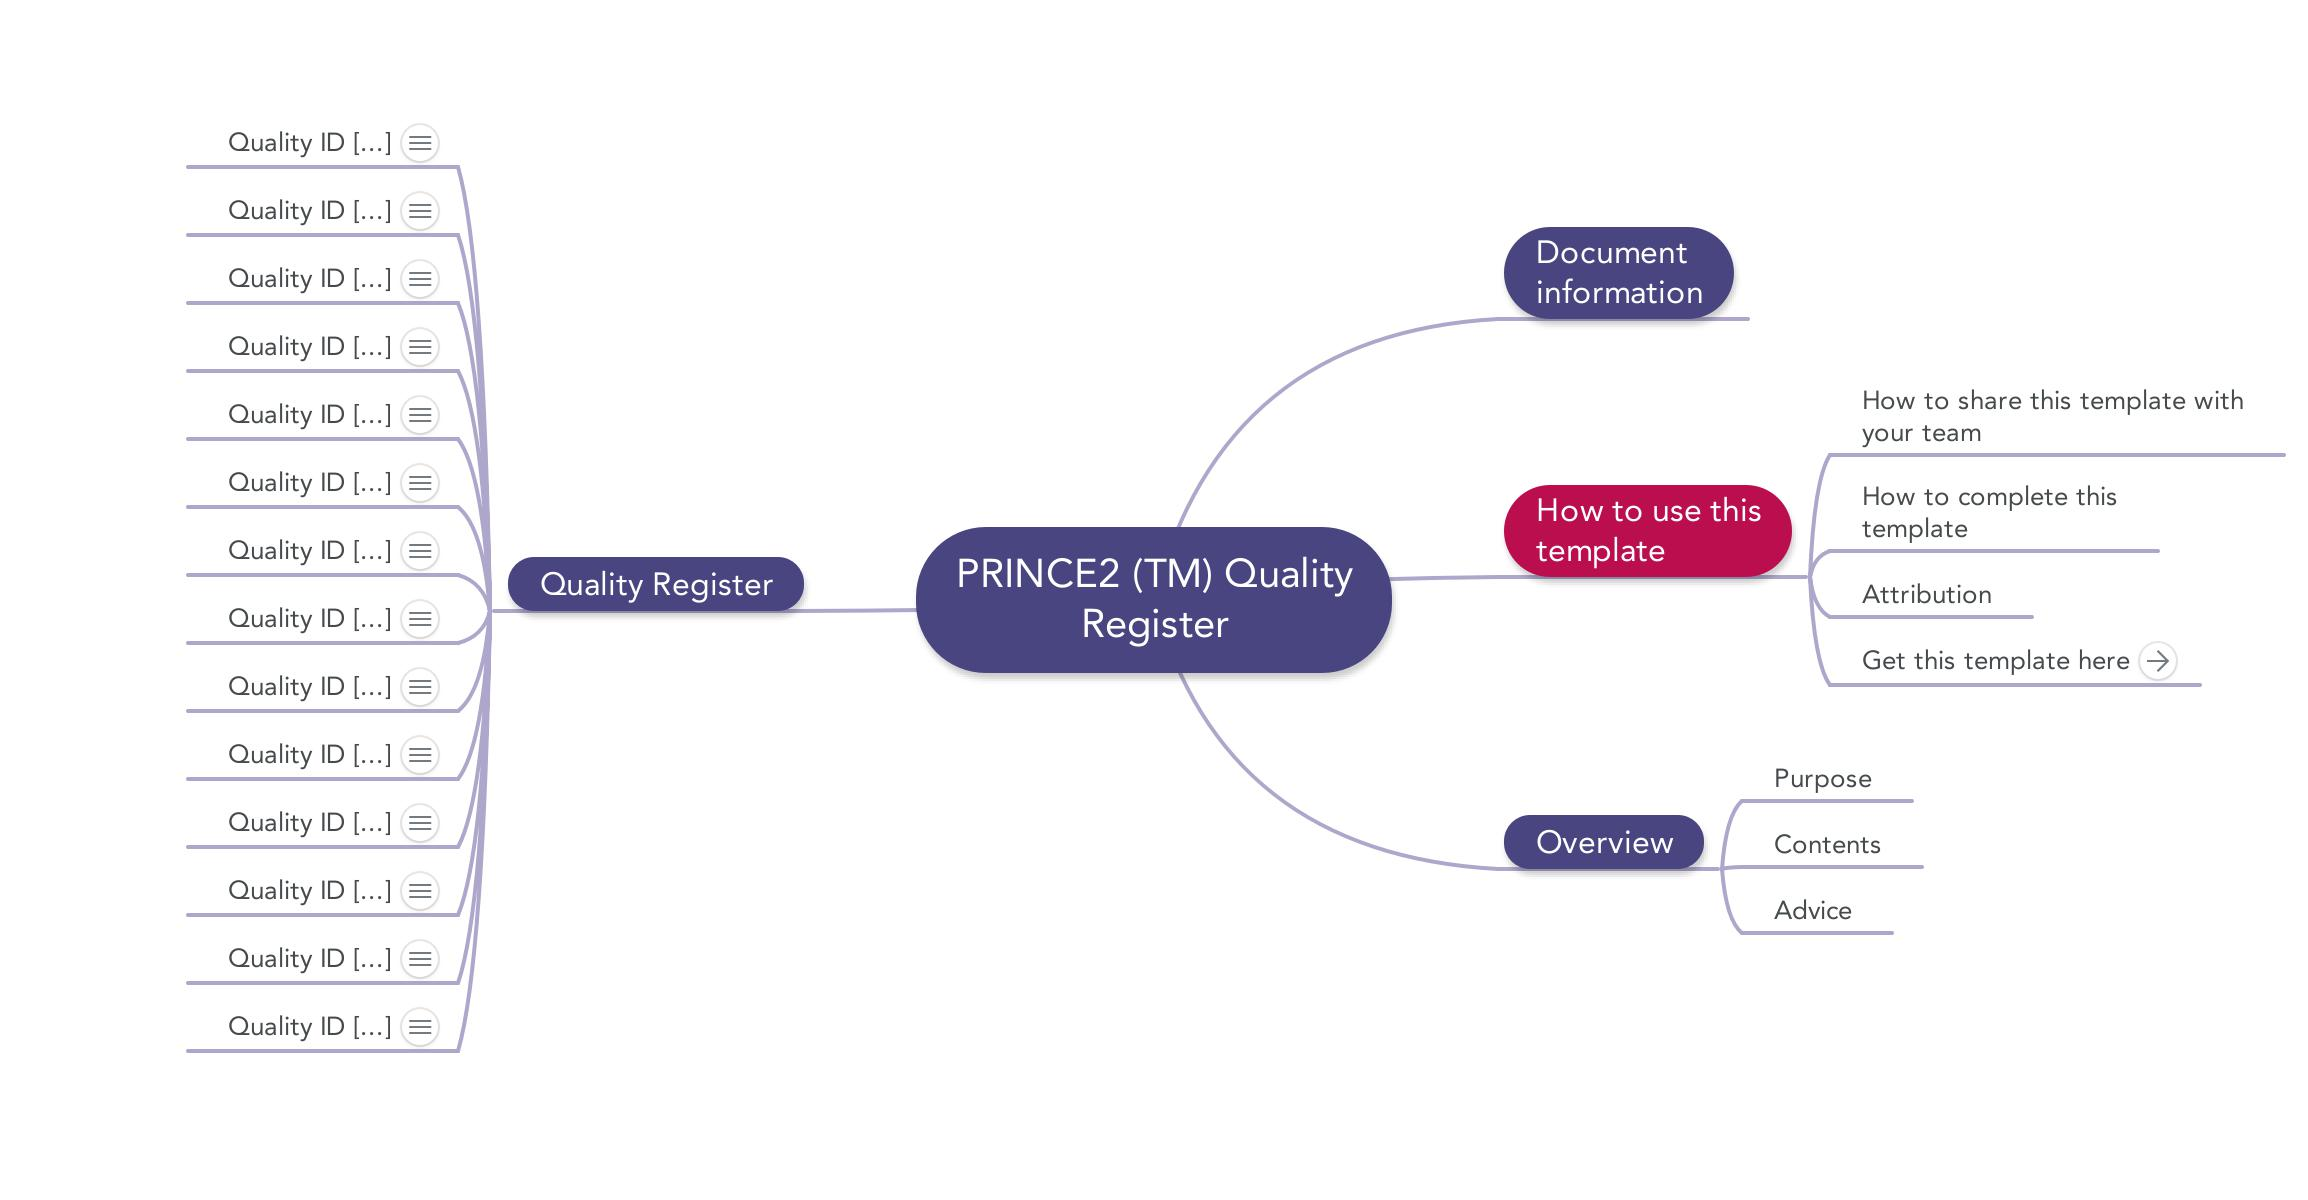 Prince2 Quality Register | Download template